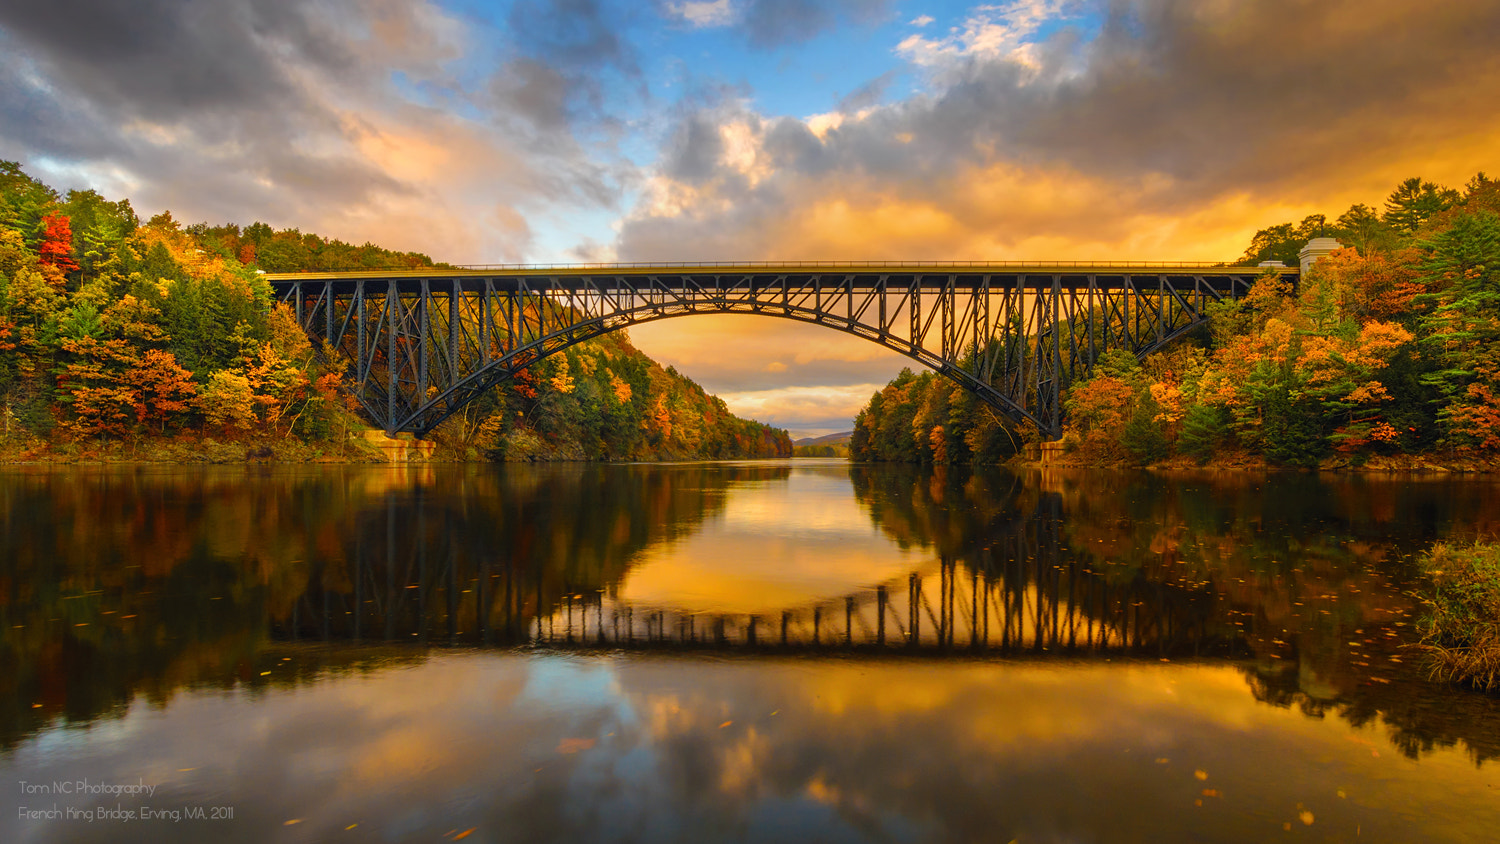 Photograph French King Bridge in Fall by Noppawat Charoensinphon on 500px